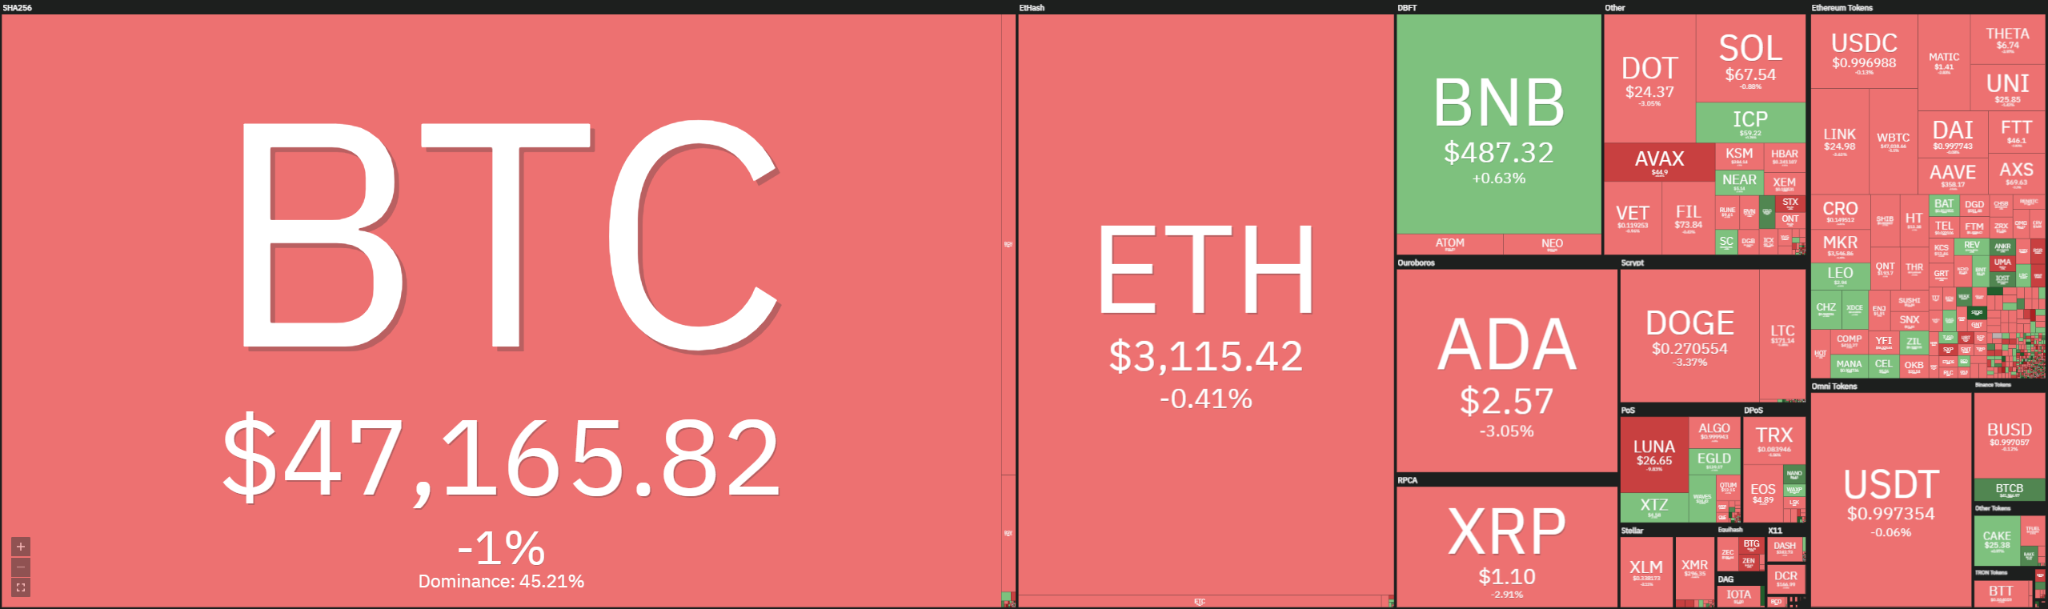 Ethereum Price Analysis: ETH spikes below $3,100, set to slowly reverse today? 1